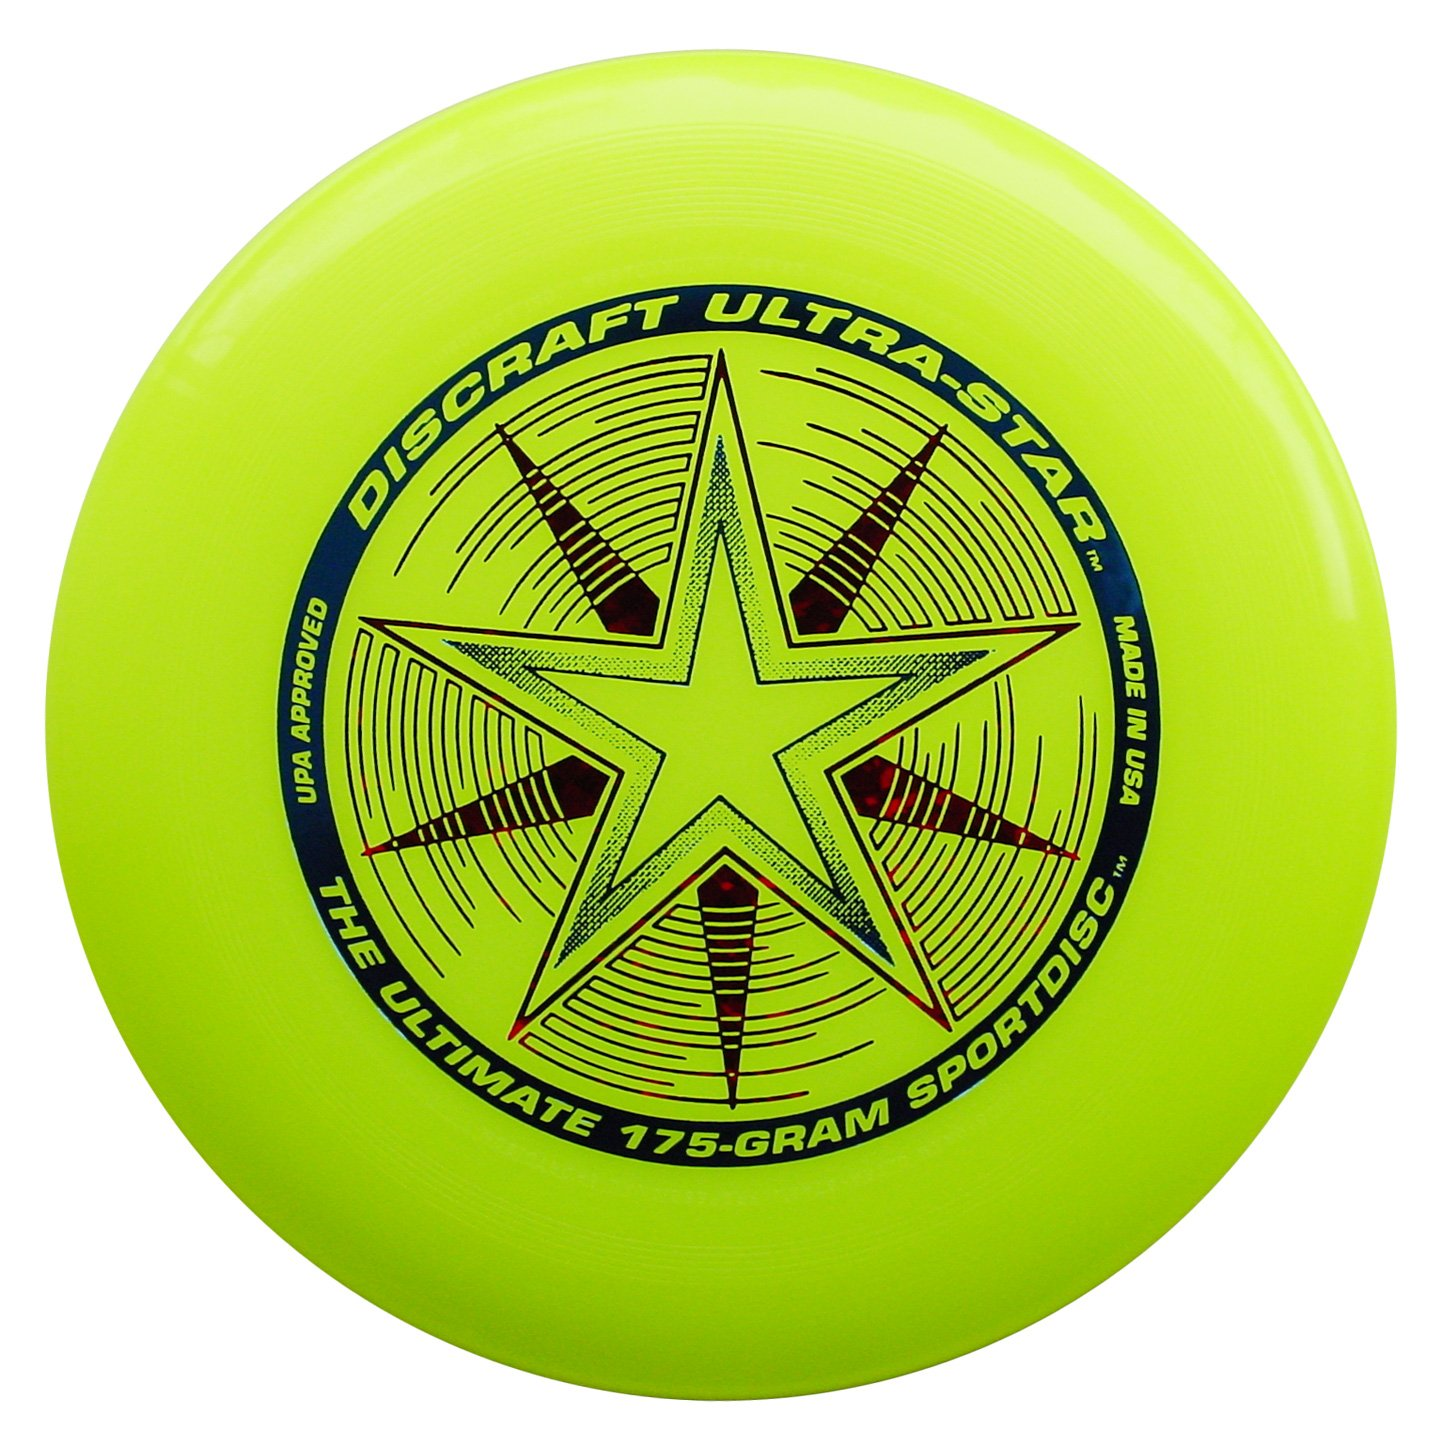 Discraft 175 gram Ultra Star Sport Disc, Fluorescent Yellow with Deluxe Packaging by Discraft